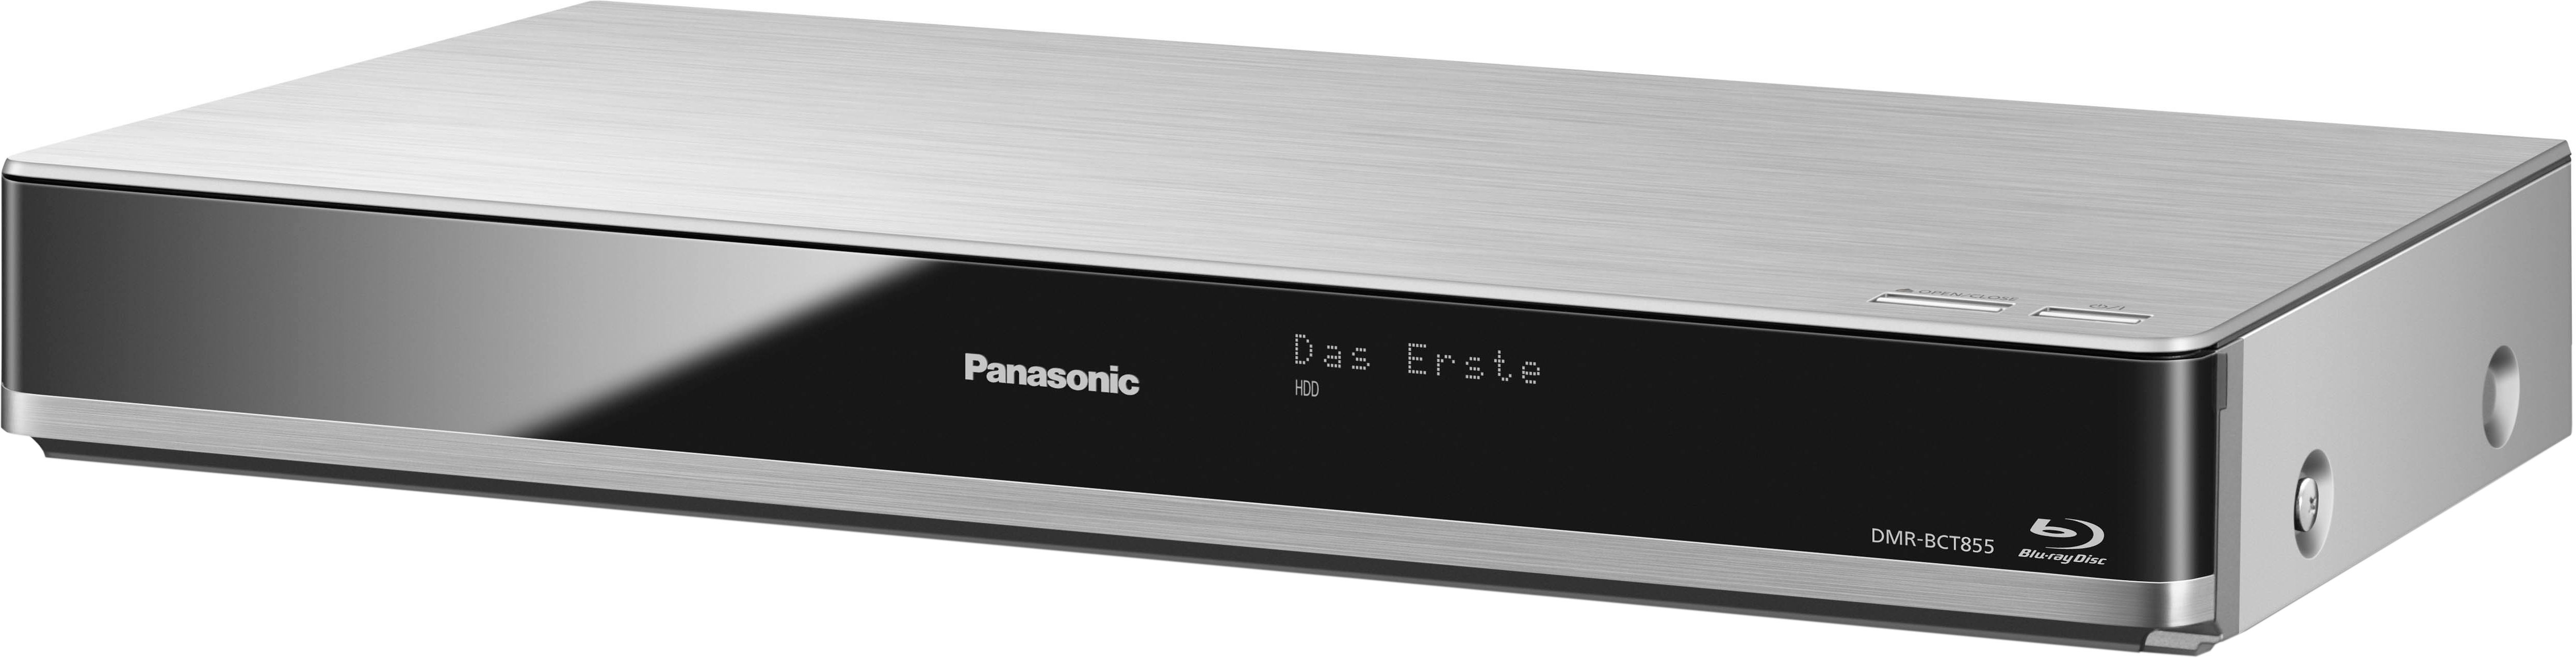 Panasonic DMR-BST855EG Blu-ray-Recorder, 3D-fähig, 4K (Ultra-HD), 1000 GB, WLAN